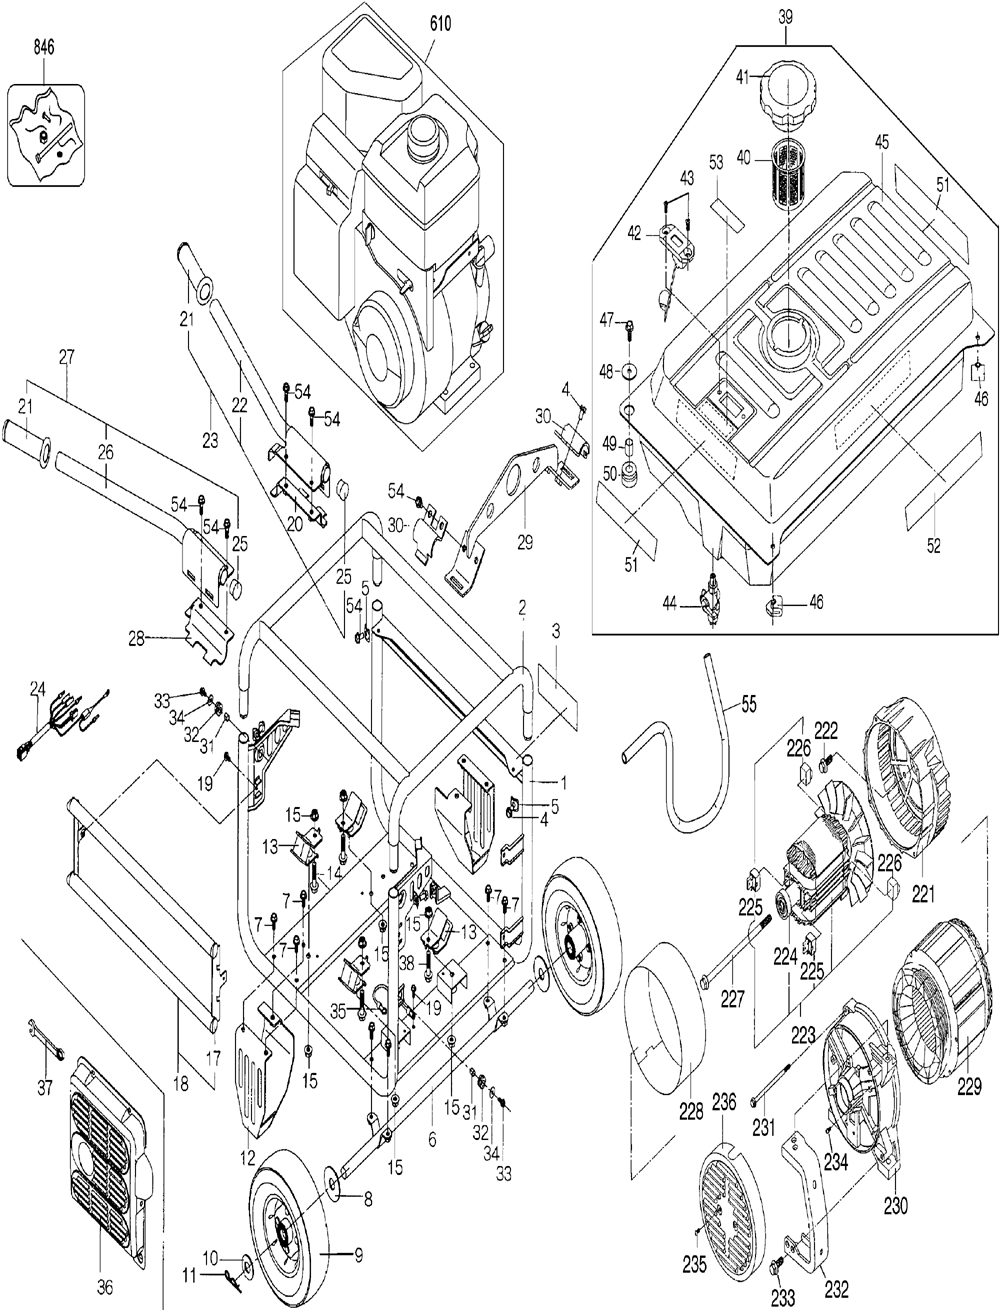 dewalt dg6000 parts list